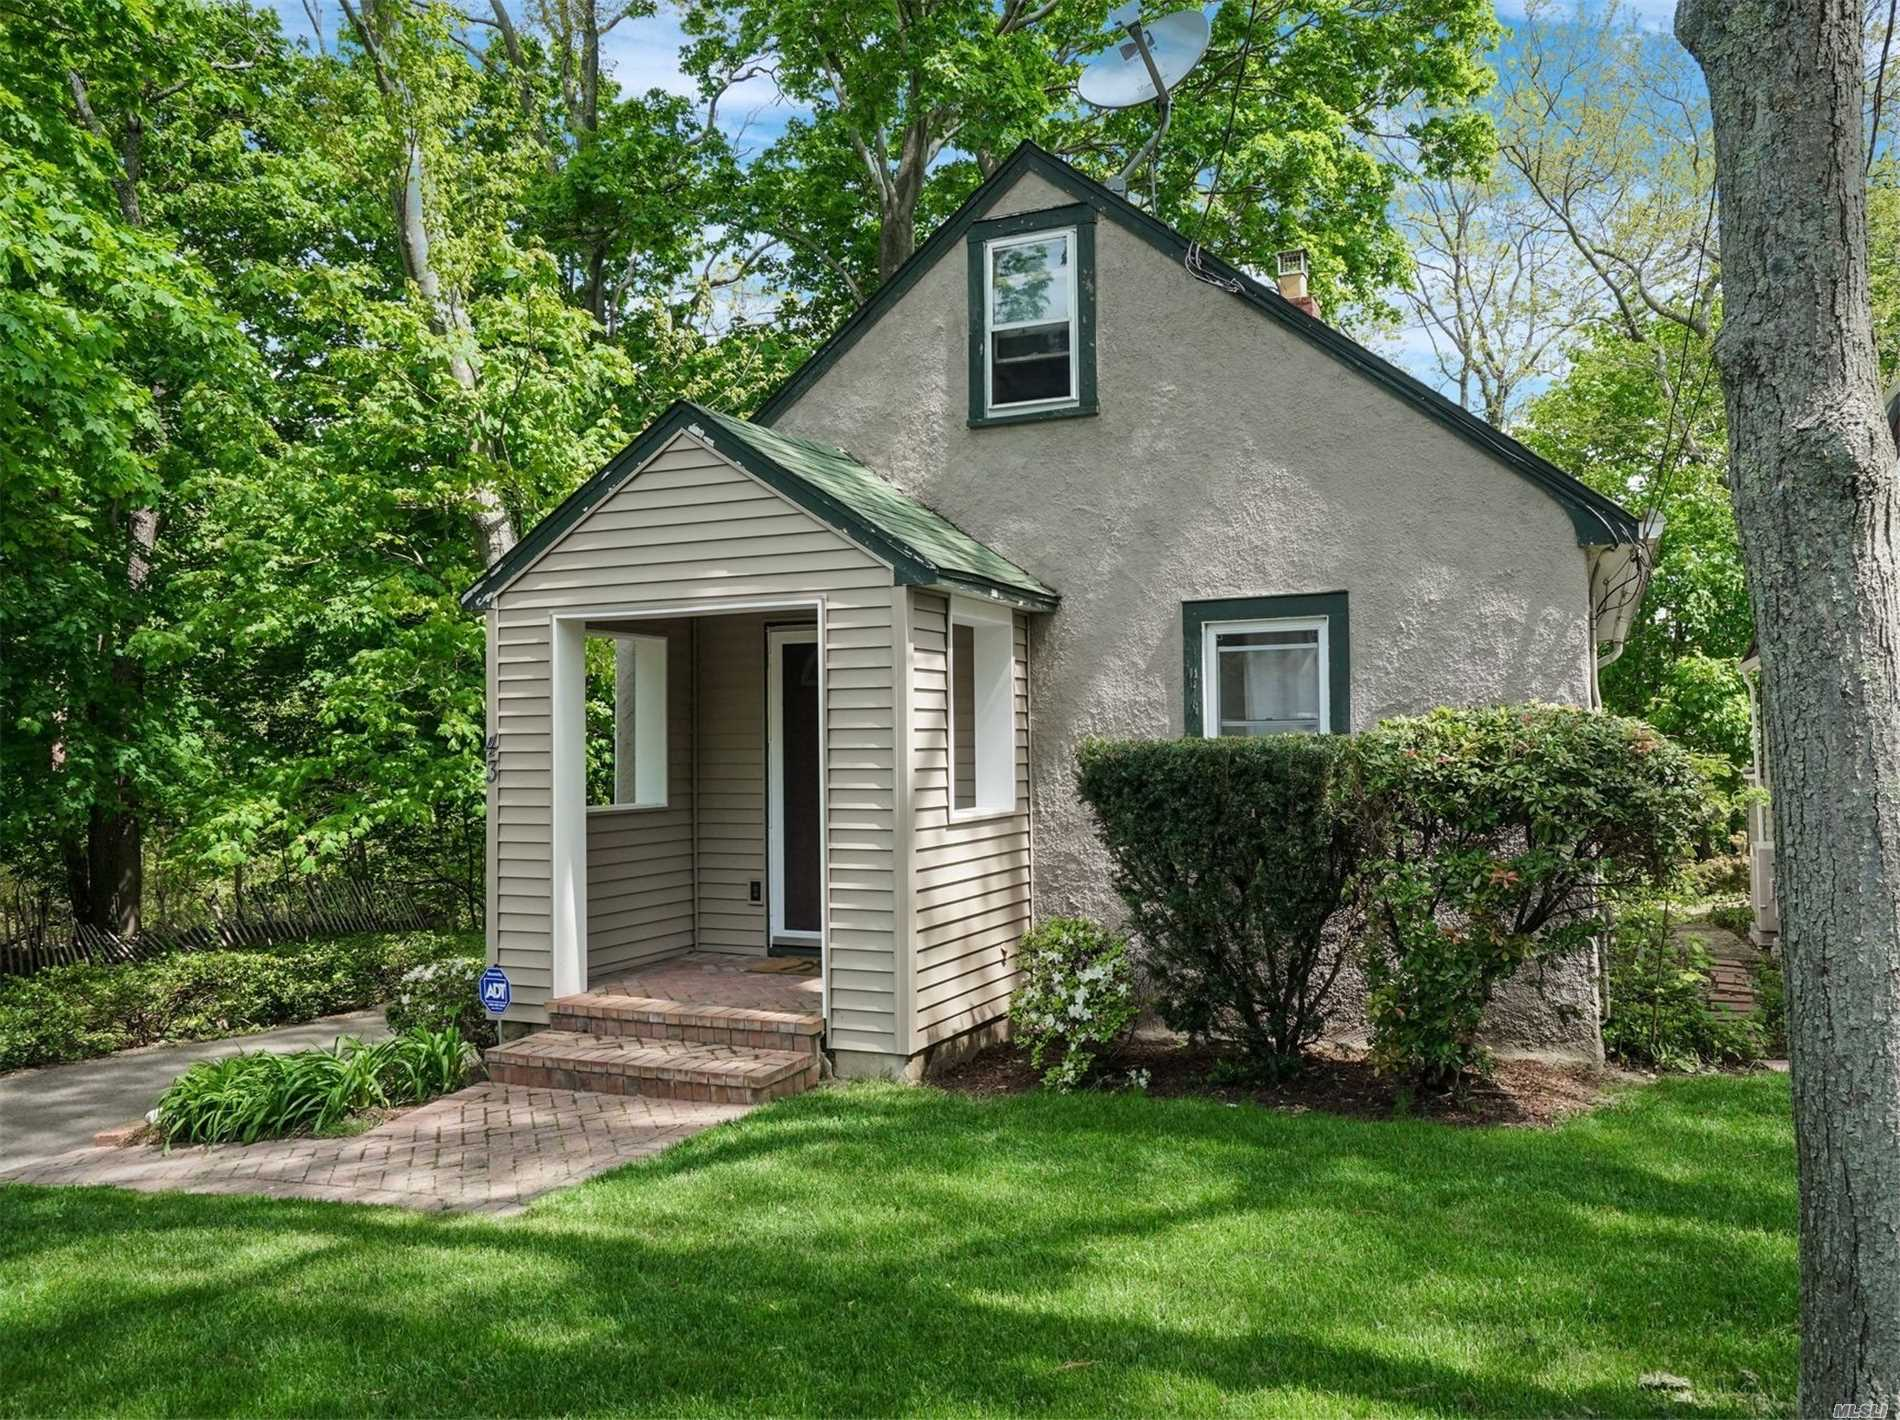 Lots New in this 2 Story Cape with Front Portico. Cathedral Mstr Suite w/Palladium Window and Woodland Views. New Floors, Burner & Oil Tank, Appliances and Newer Anderson Windows. Brick Patio, Walk to Long Island Sound Beach. Slight Winter Water View. LOW, LOW Taxes. Just Move In. Listing Agent/Agency makes No Warranties or Representations.